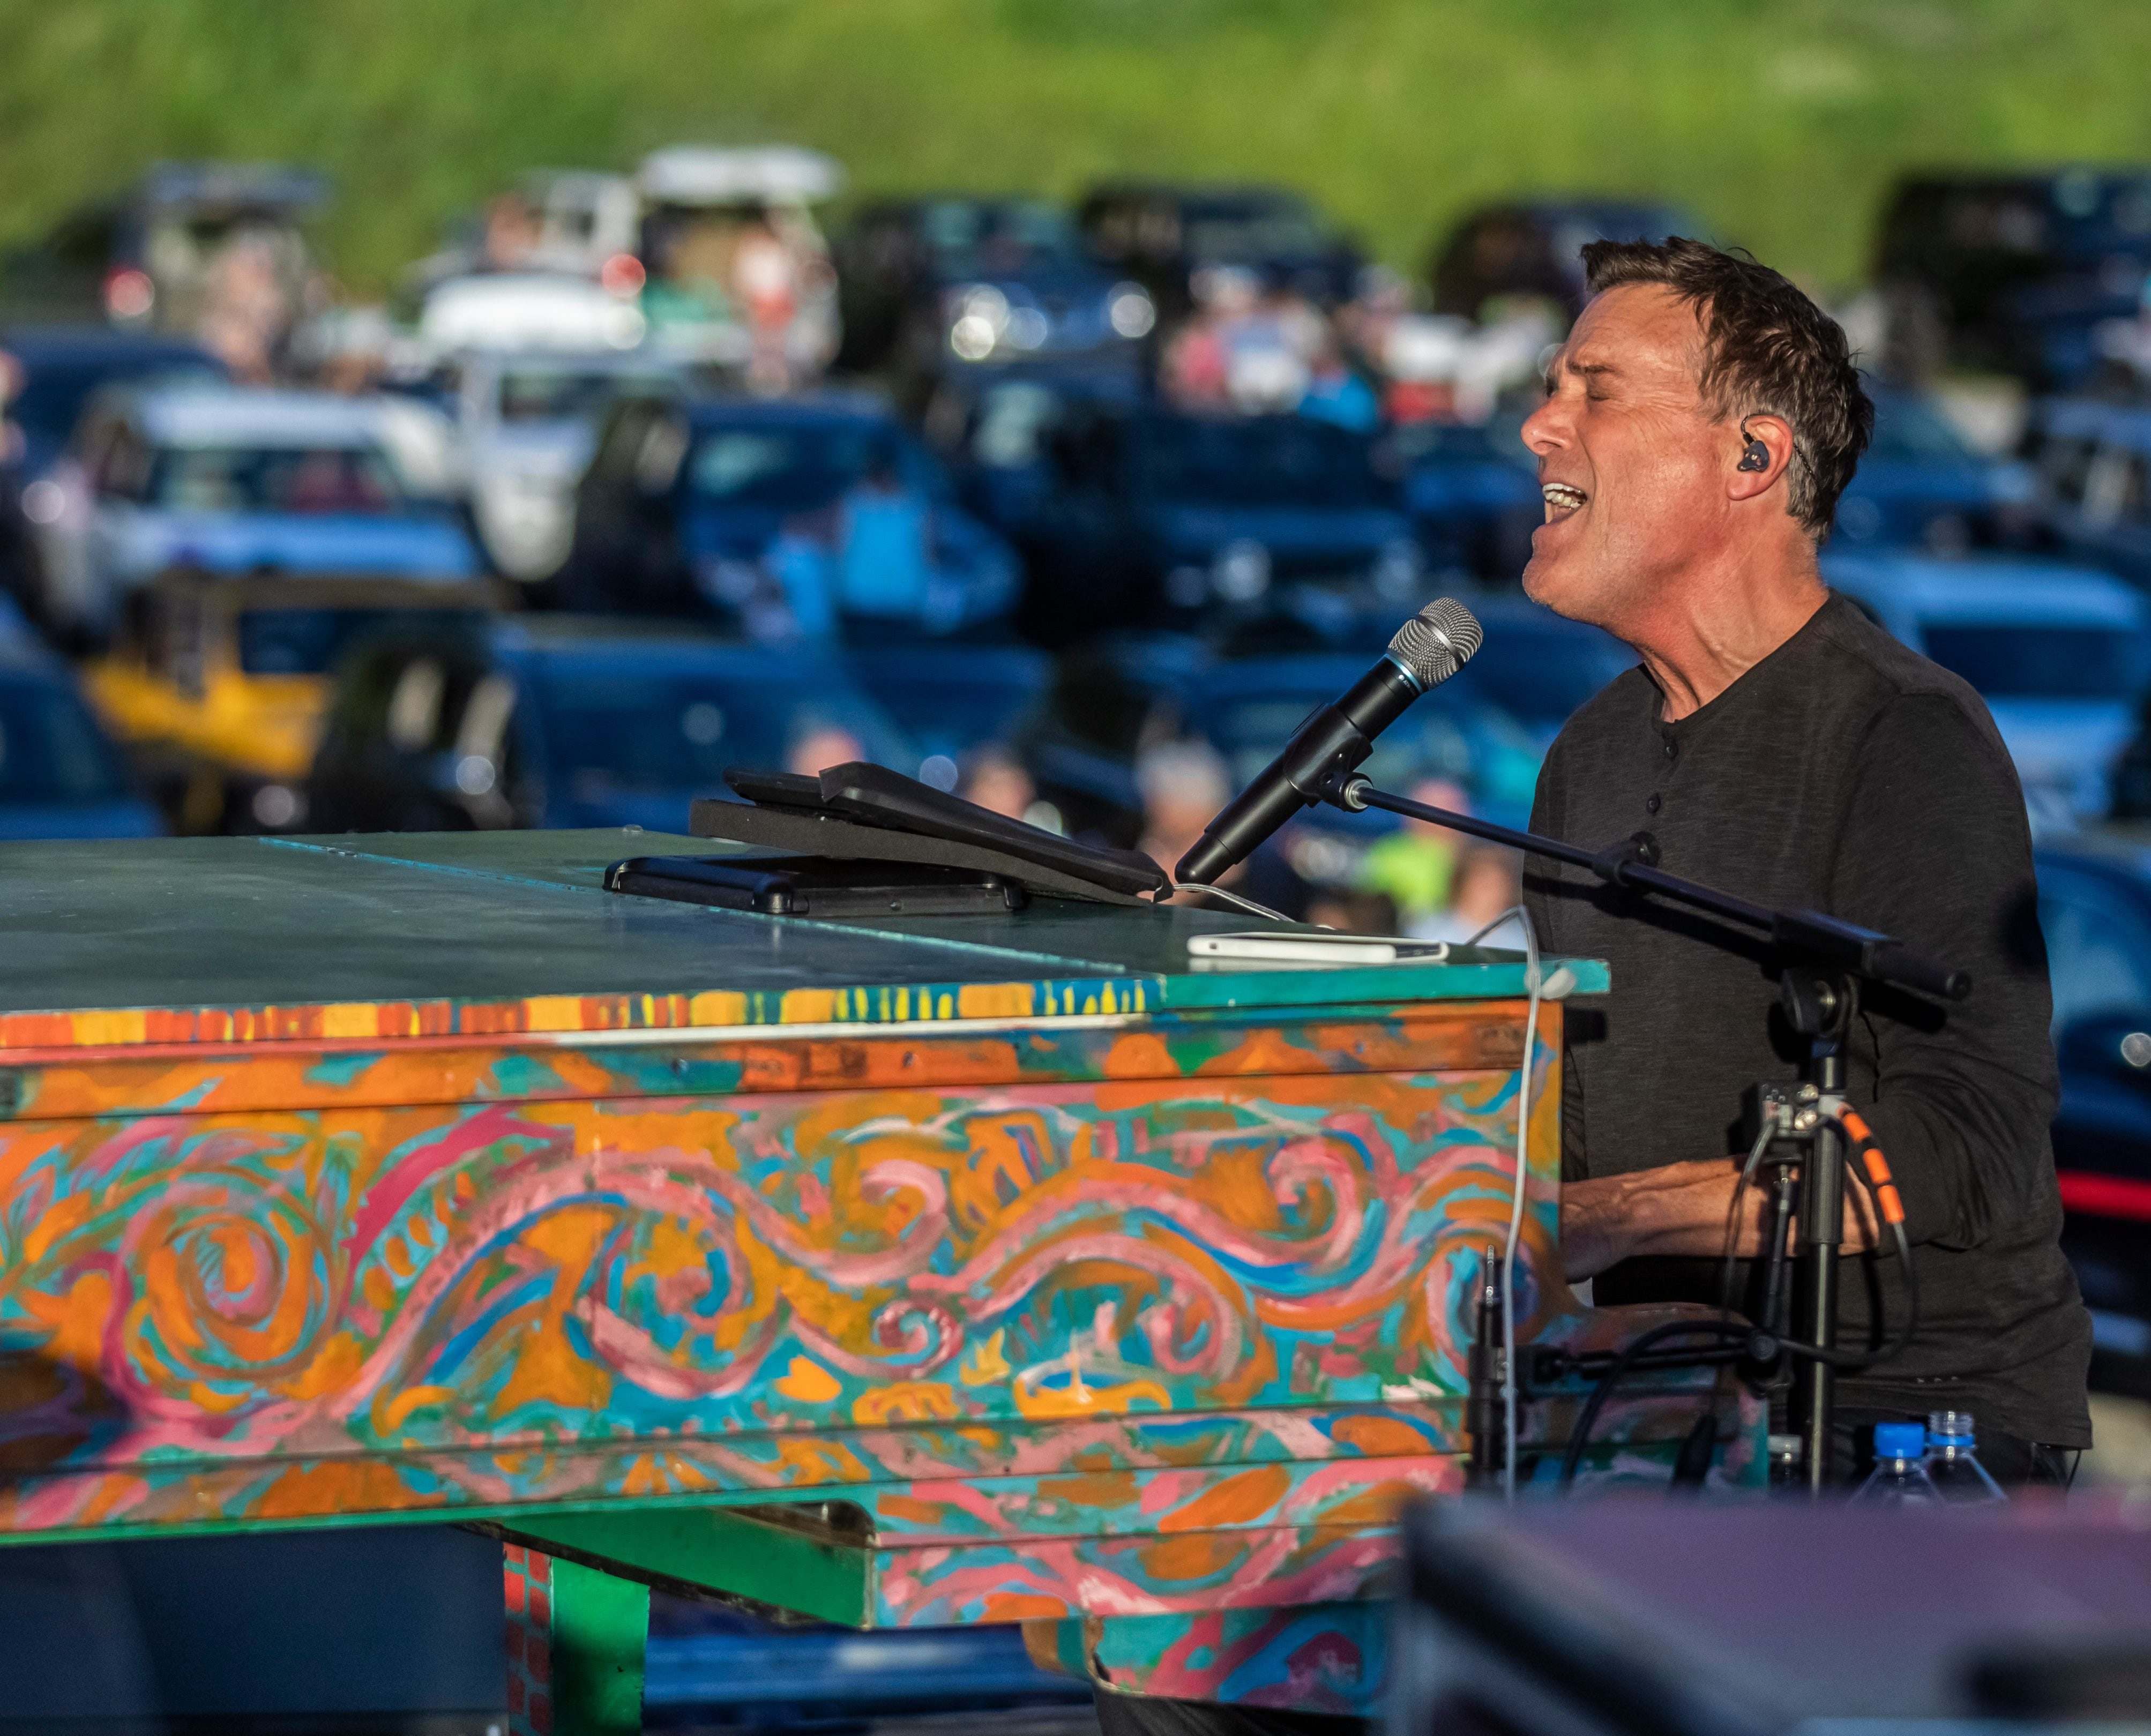 Michael W. Smith plays a drive-in concert in Franklin, prays for a country  in trouble